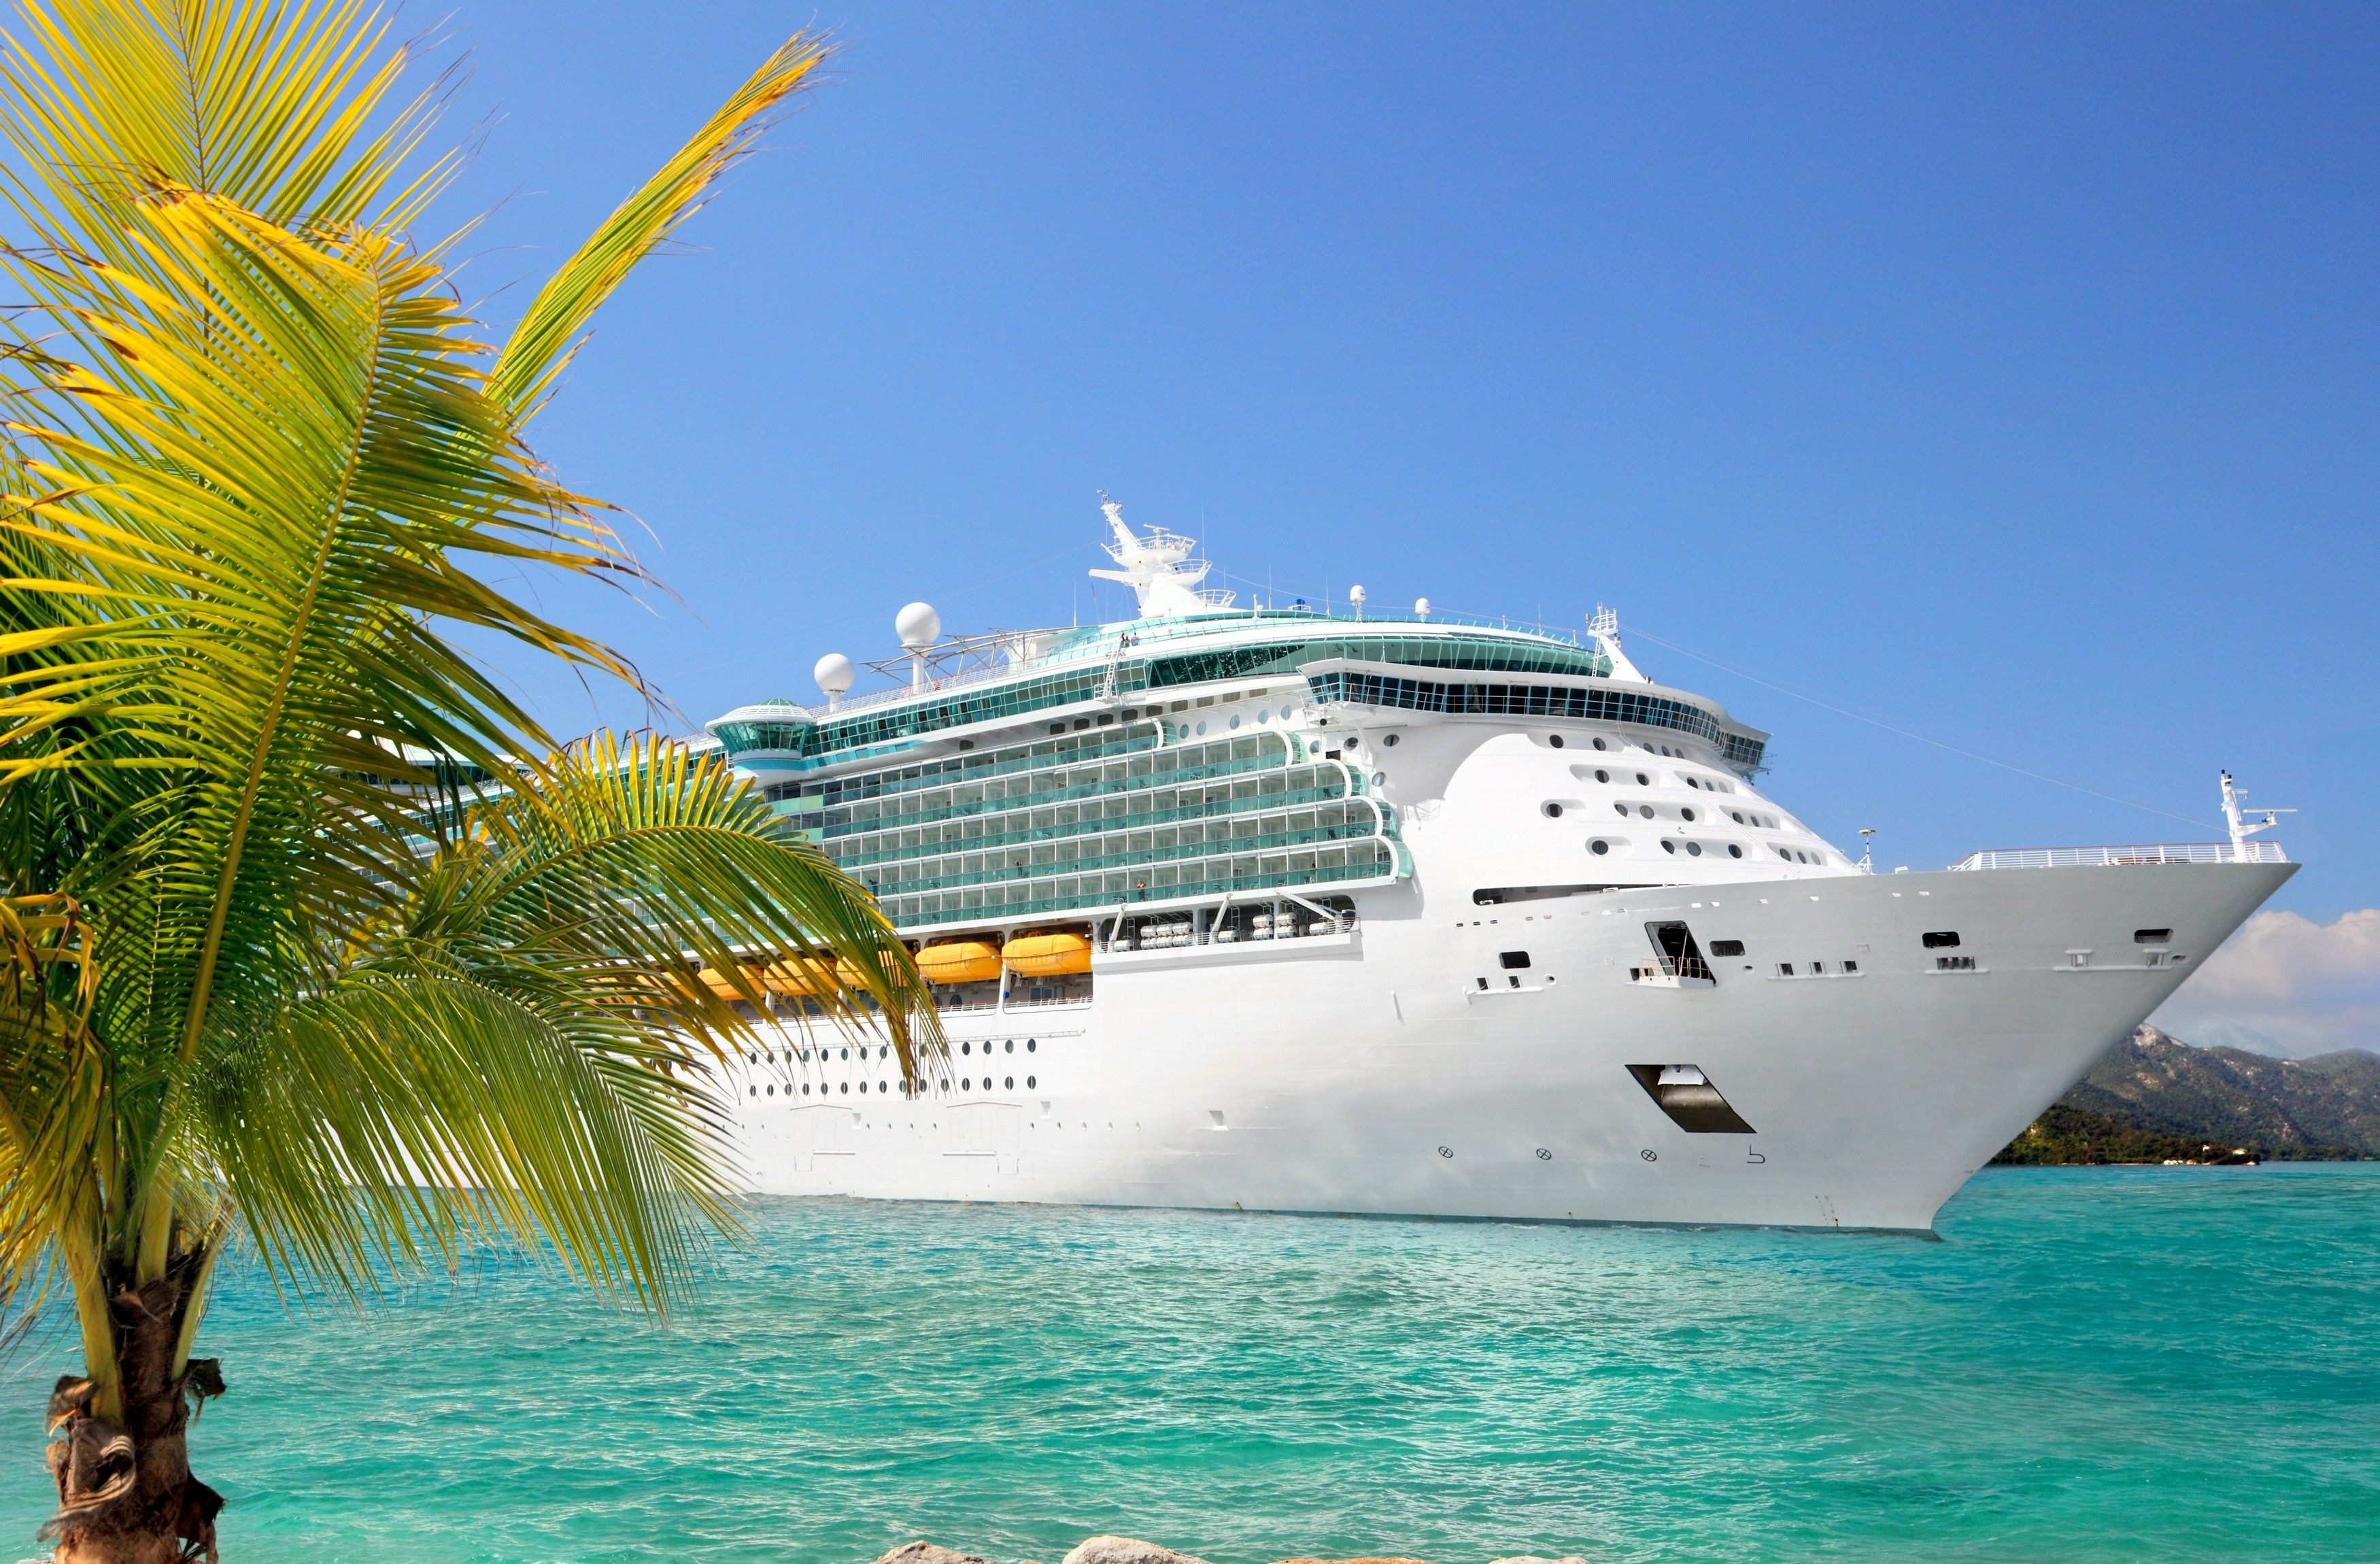 Cruise Ships Wallpapers Wallpaper Cave